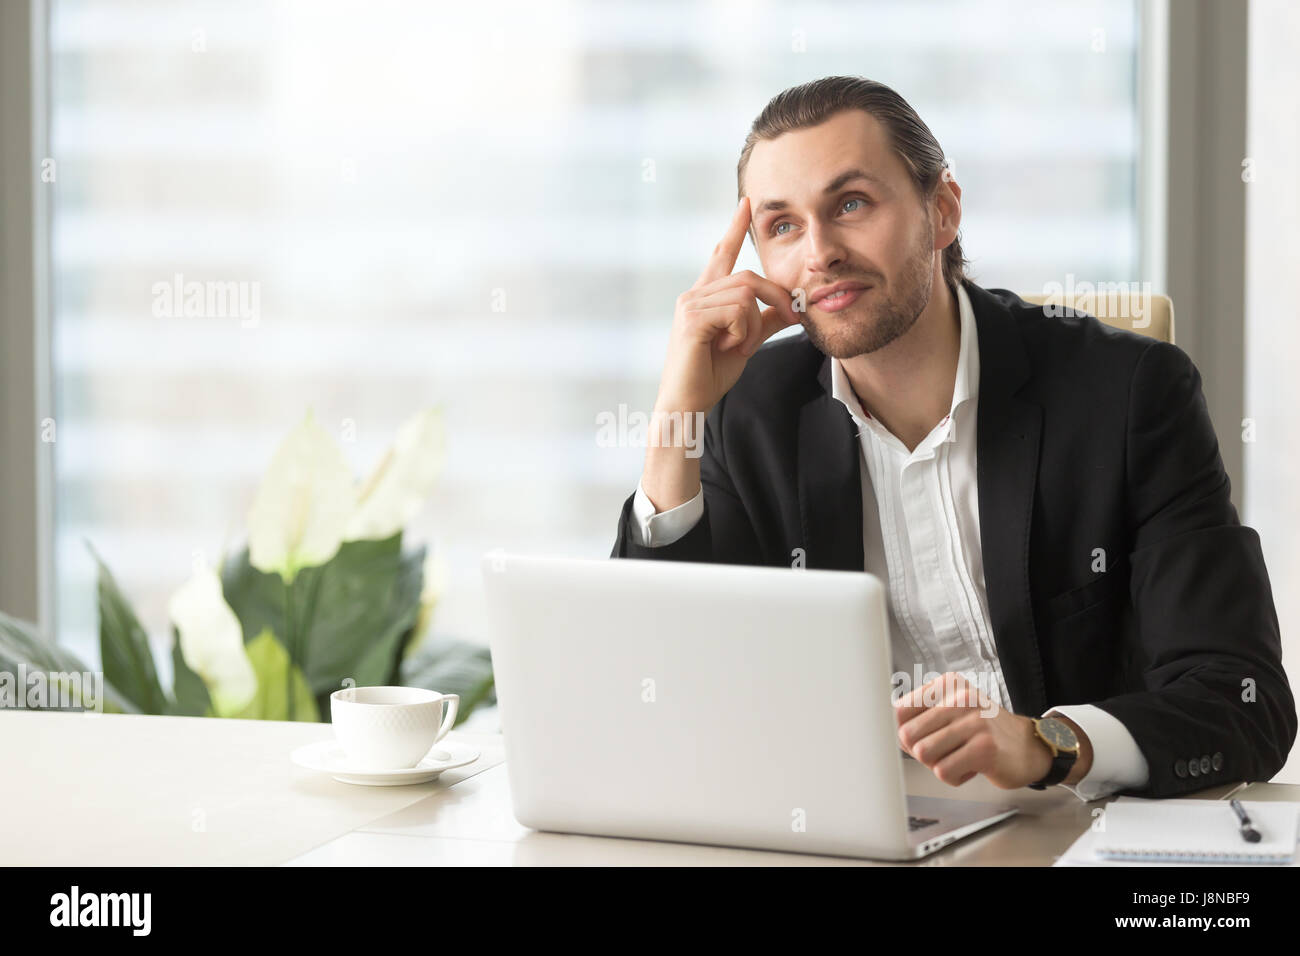 Young businessman dreaming about successful future at office desk. Attractive entrepreneur ponders decision, imagines - Stock Image